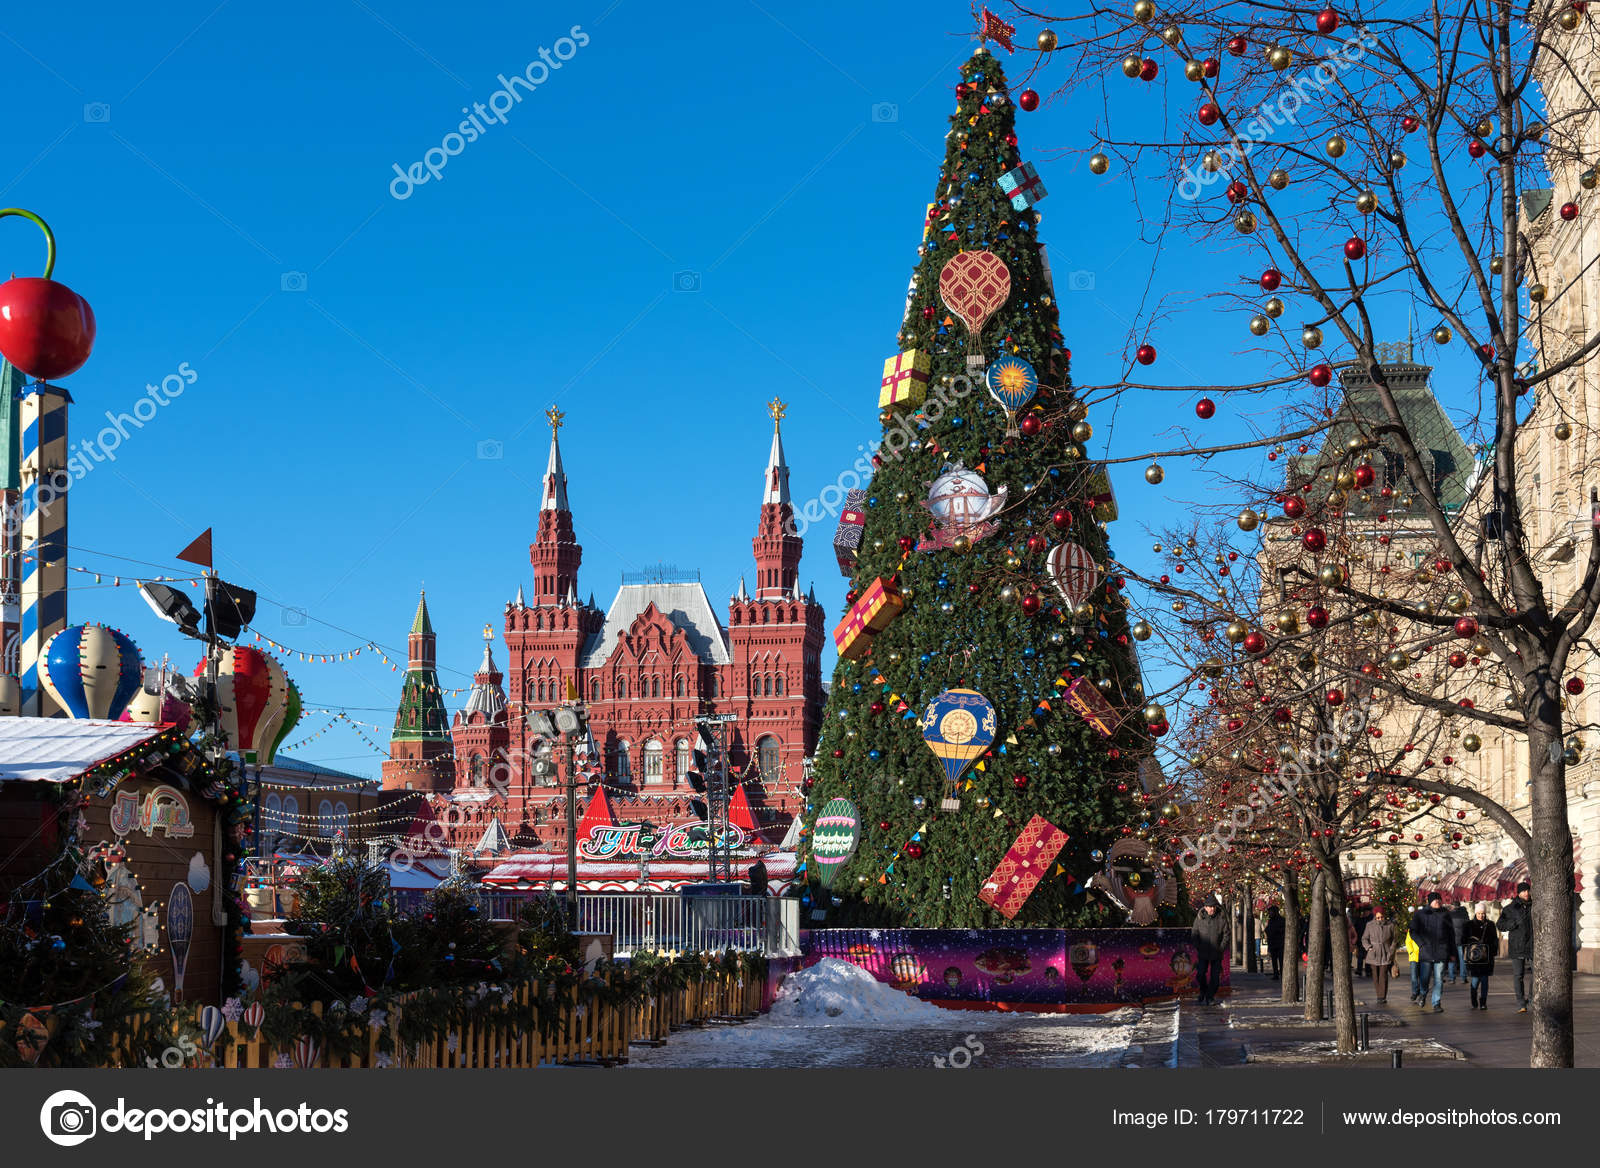 moscow russia january 9 2018 new year and christmas market and decorations on red square gum with a christmas tree against the background of the